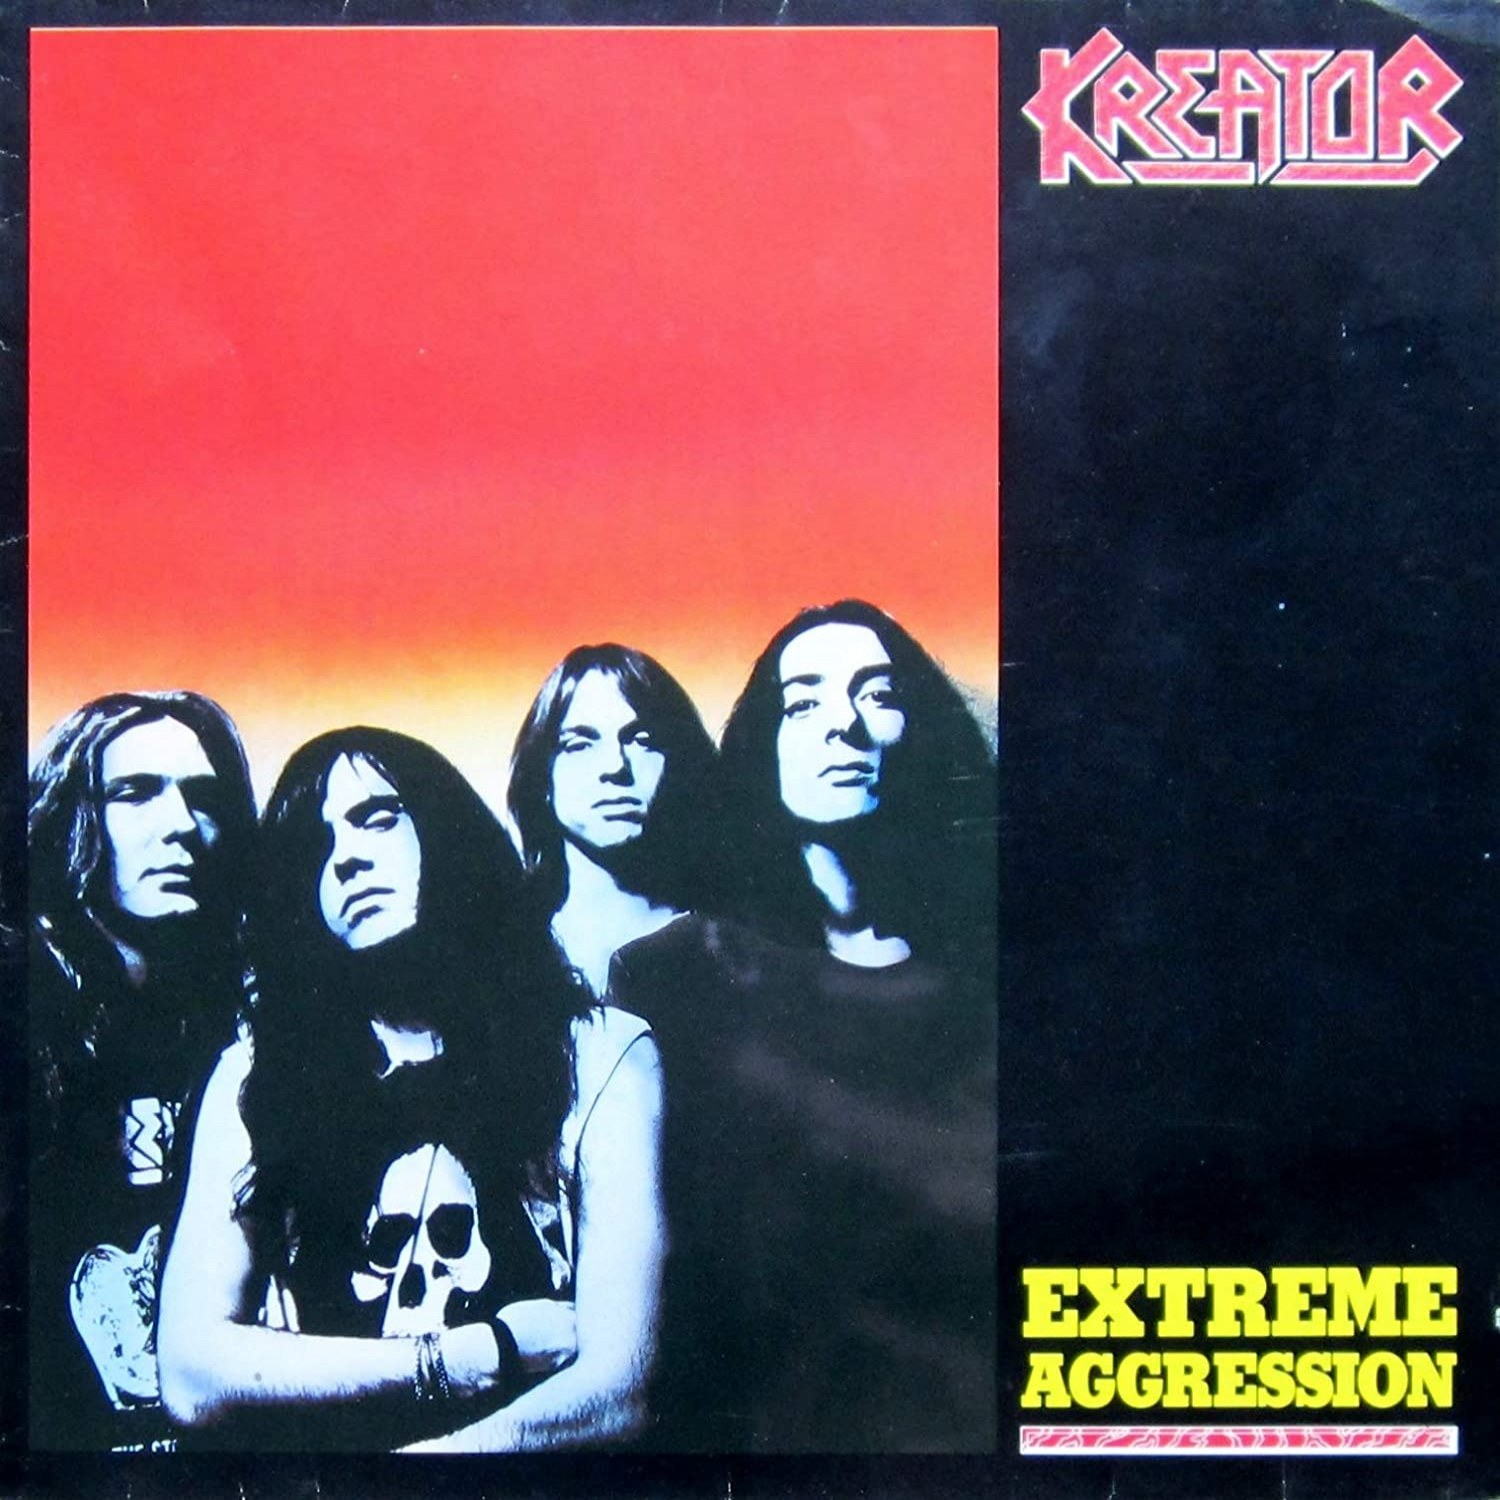 Best 1989 Black Metal album: 'Kreator - Extreme Aggression'